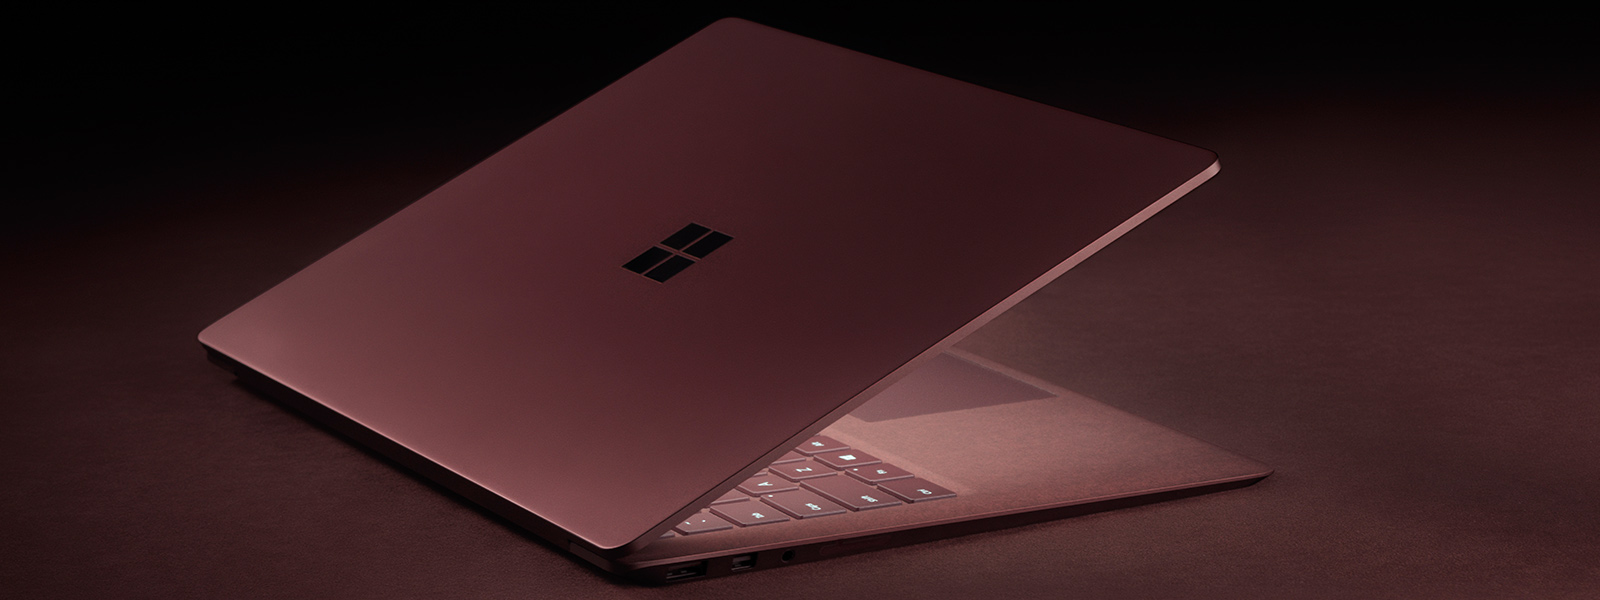 Microsoft Announces New Surface Laptop Powered By 7th